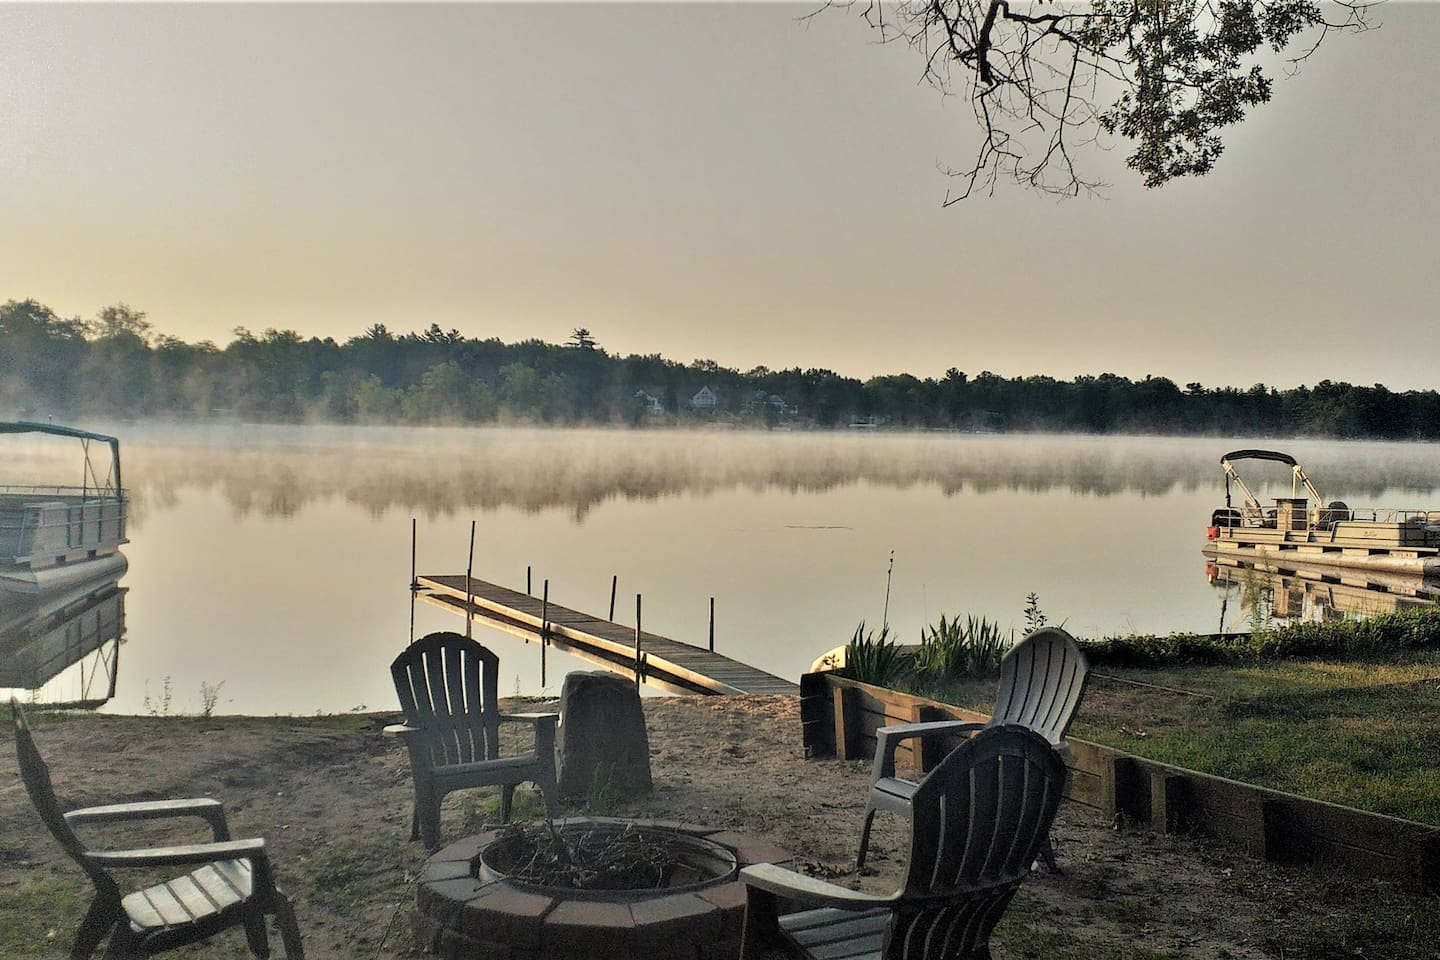 The morning dew rising off the lake,  perfect place to have a cup of coffee!